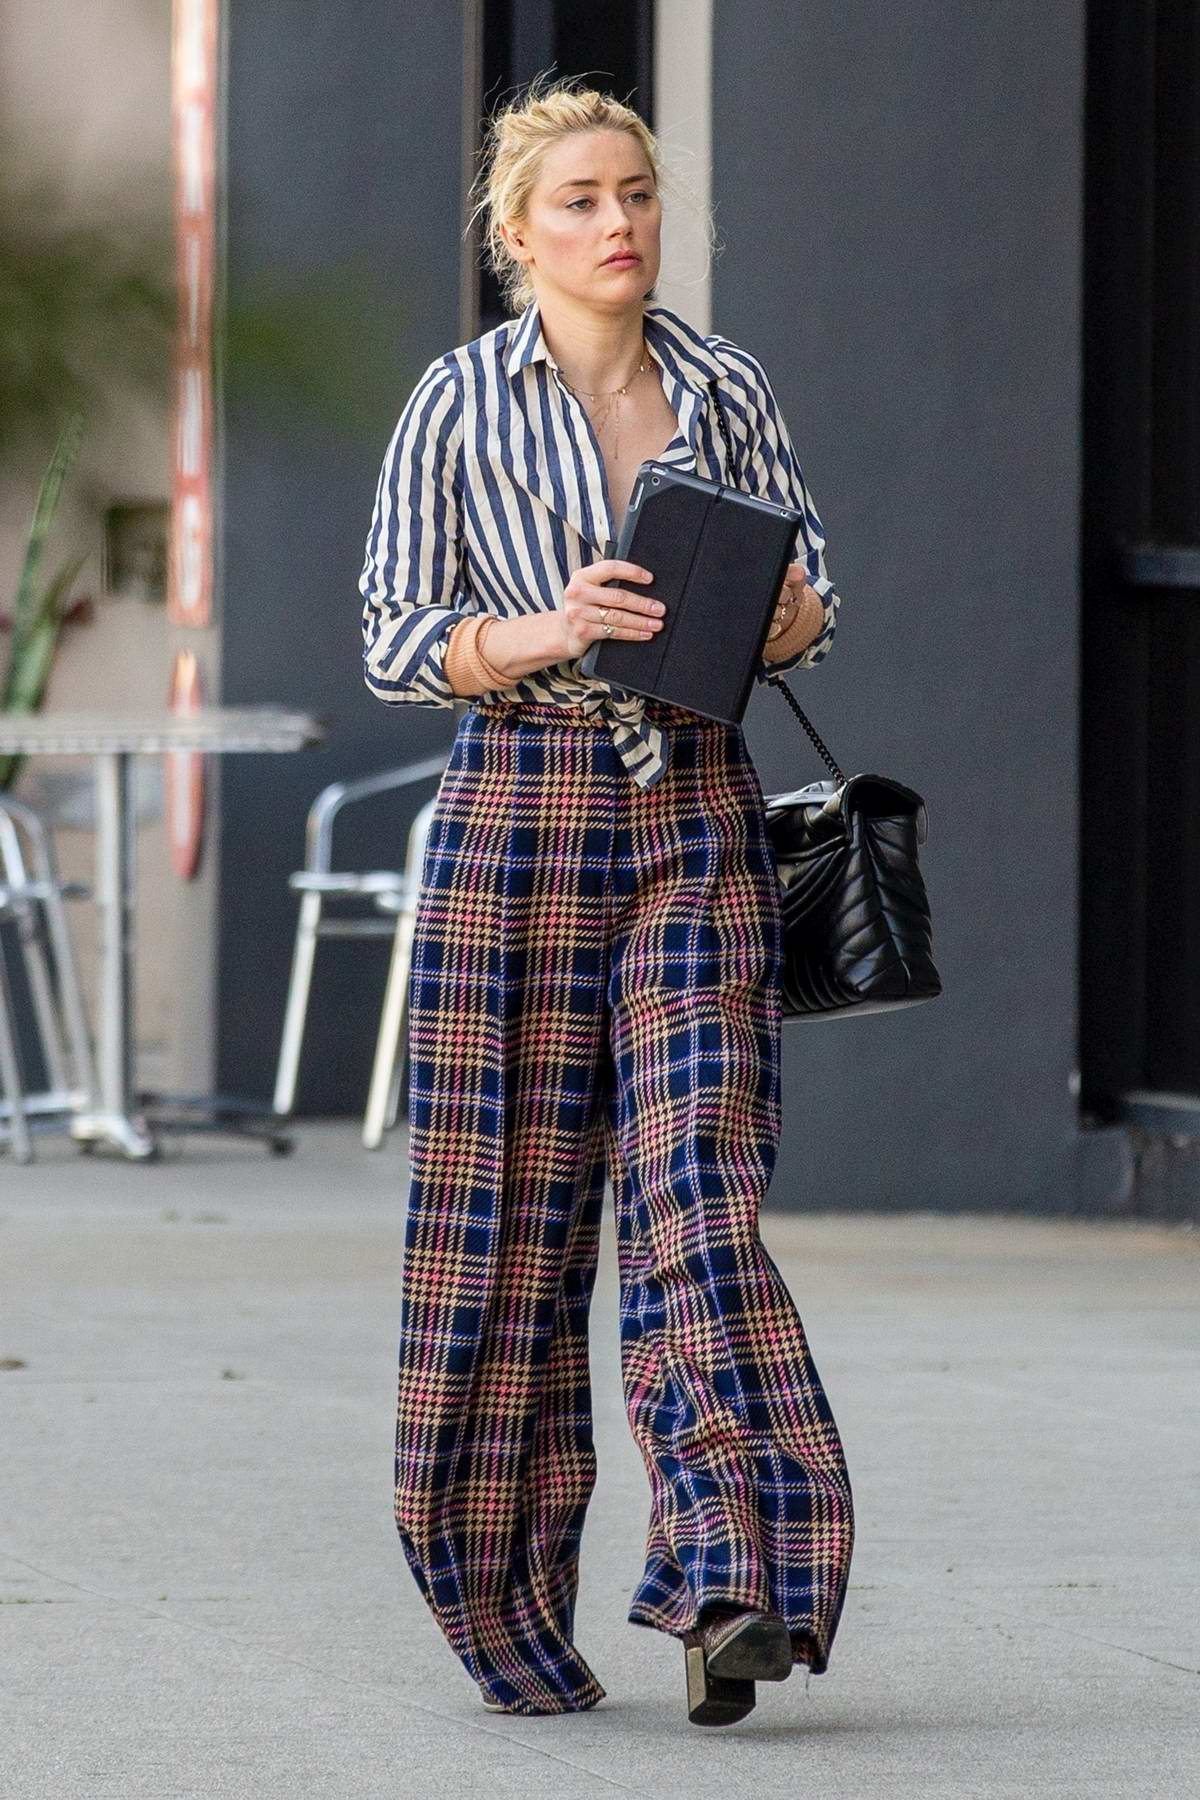 Amber Heard looks stylish in a striped shirt and plaid trousers while attending a business meeting in Beverly Hills, California